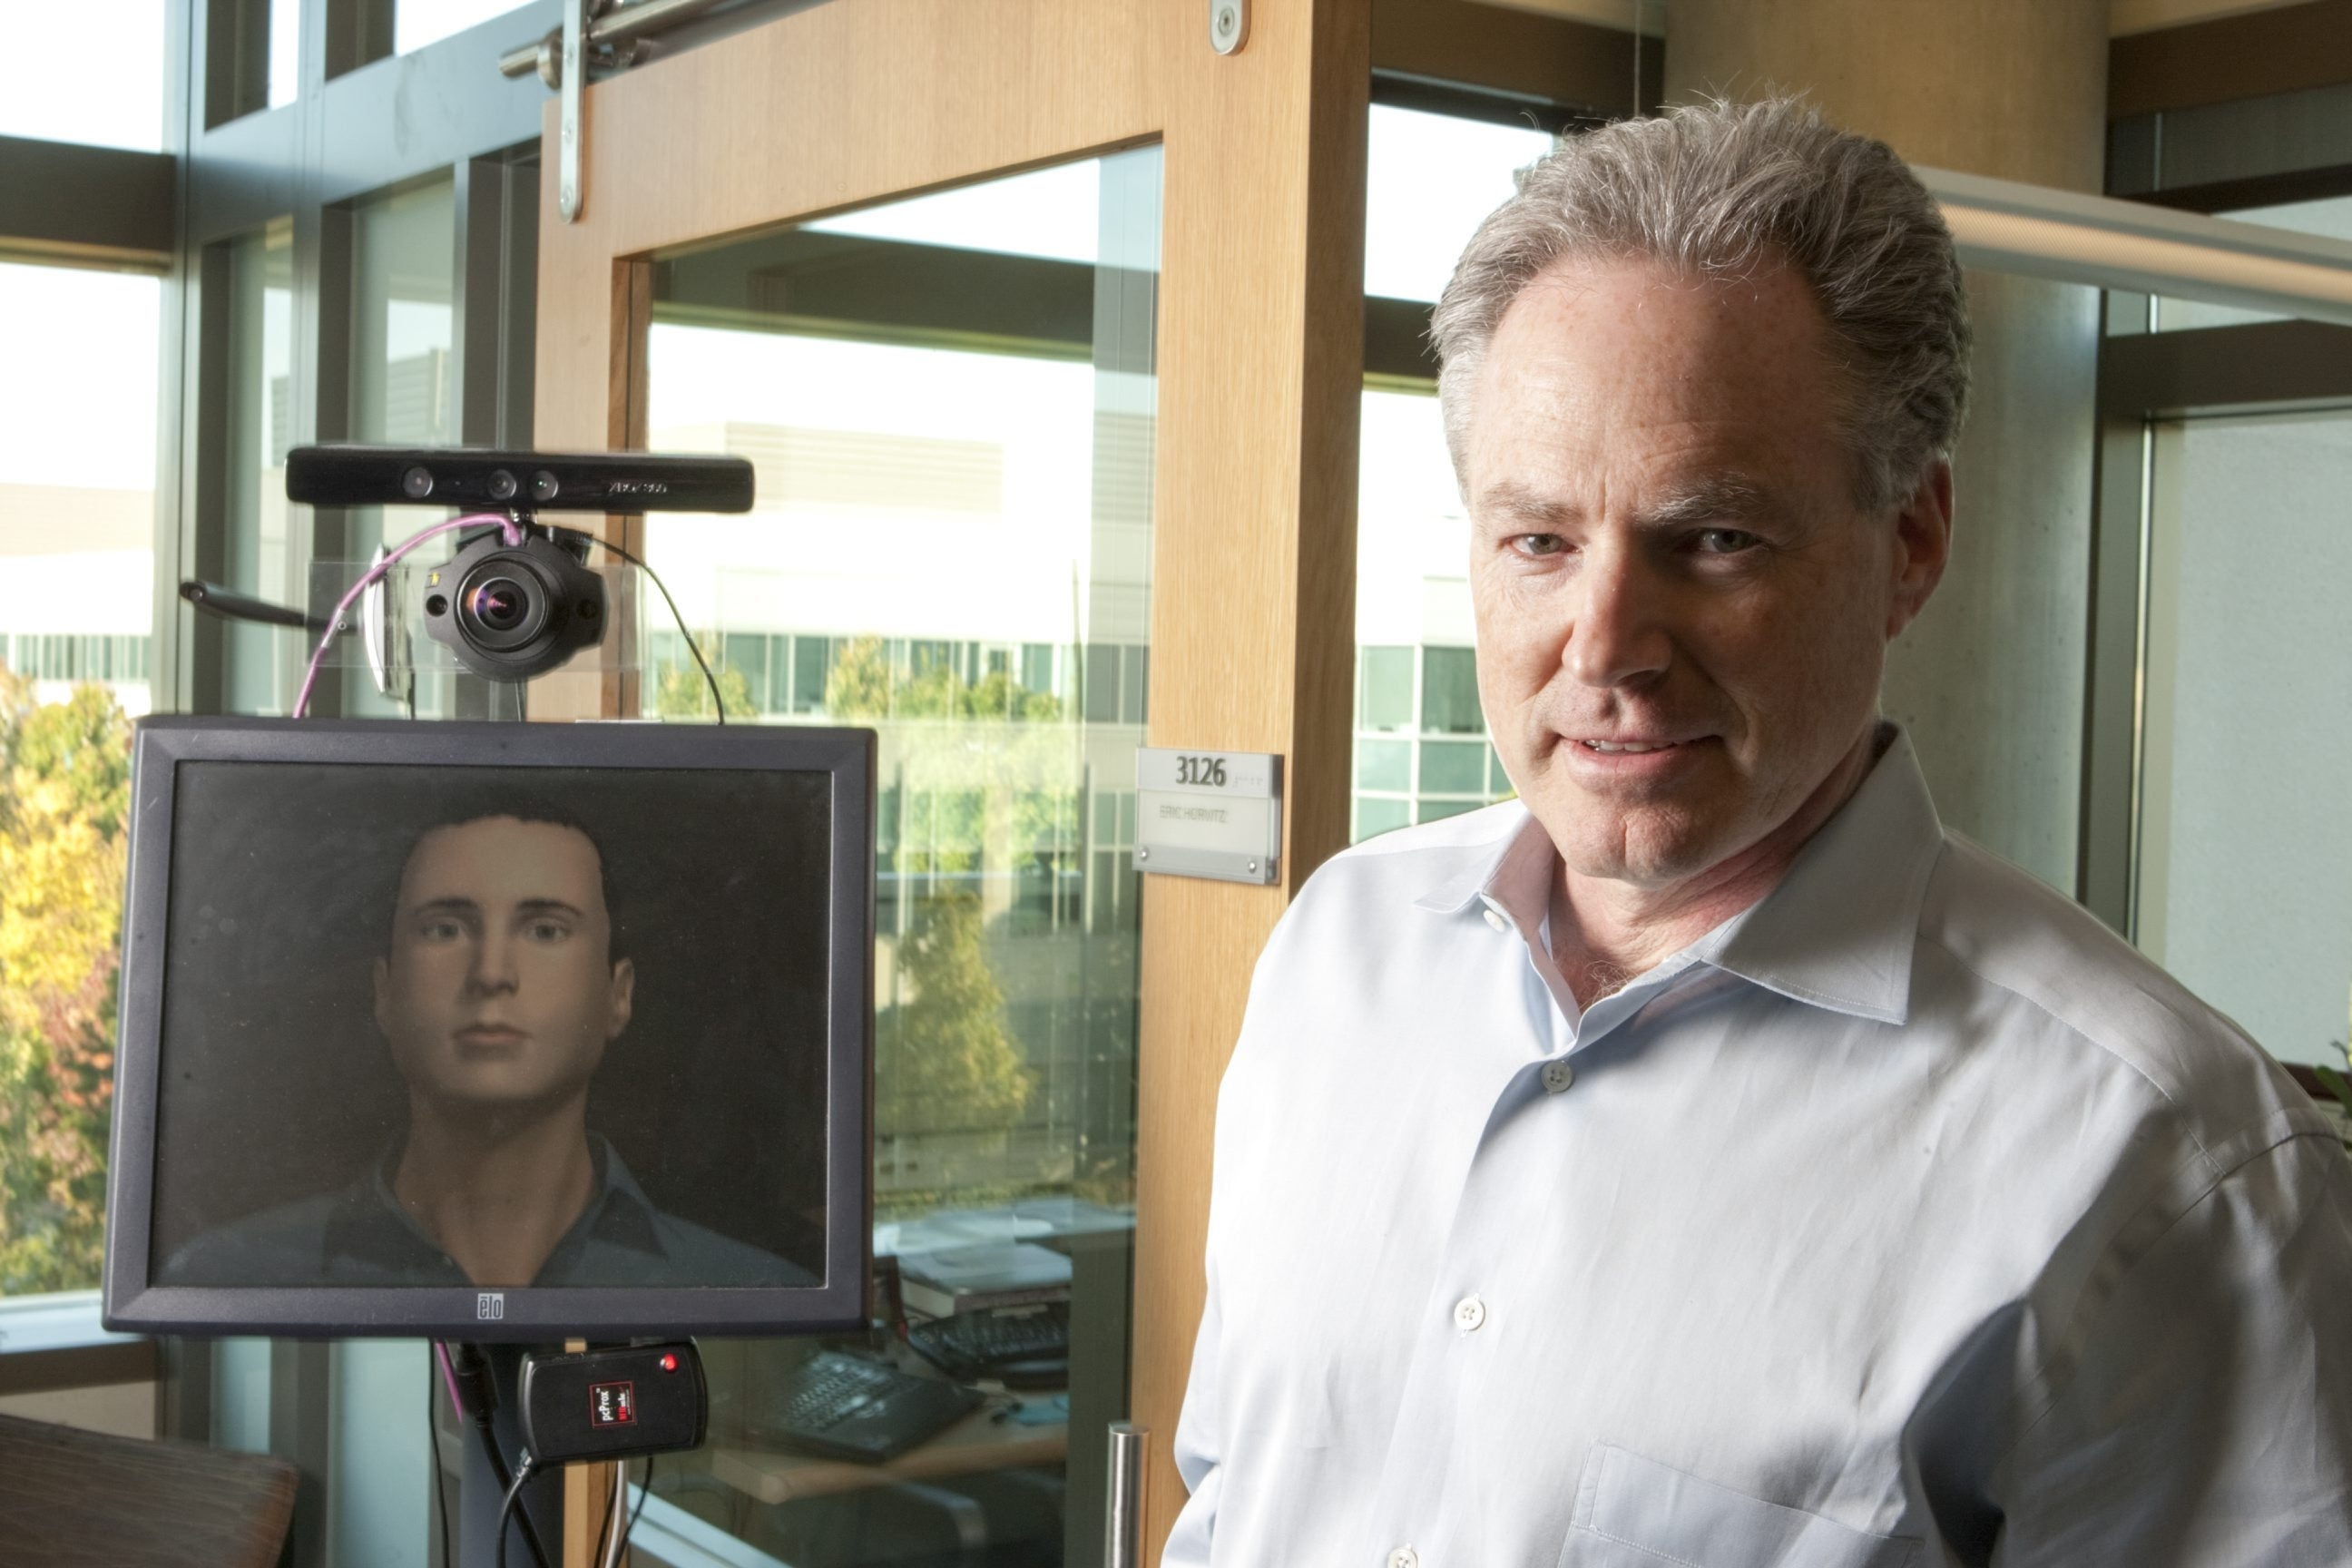 FILE -- Eric Horvitz, co-director of Microsoft Research, stands next to a robot in his office in Redmond, Wash., Oct. 3, 2012. A modern spin on age-old Luddite fears has crept into our understanding of technological innovations, as information technology creeps into occupations that have historically relied on brainpower and threaten to wreak havoc on the job market. (Kevin P. Casey/The New York Times)